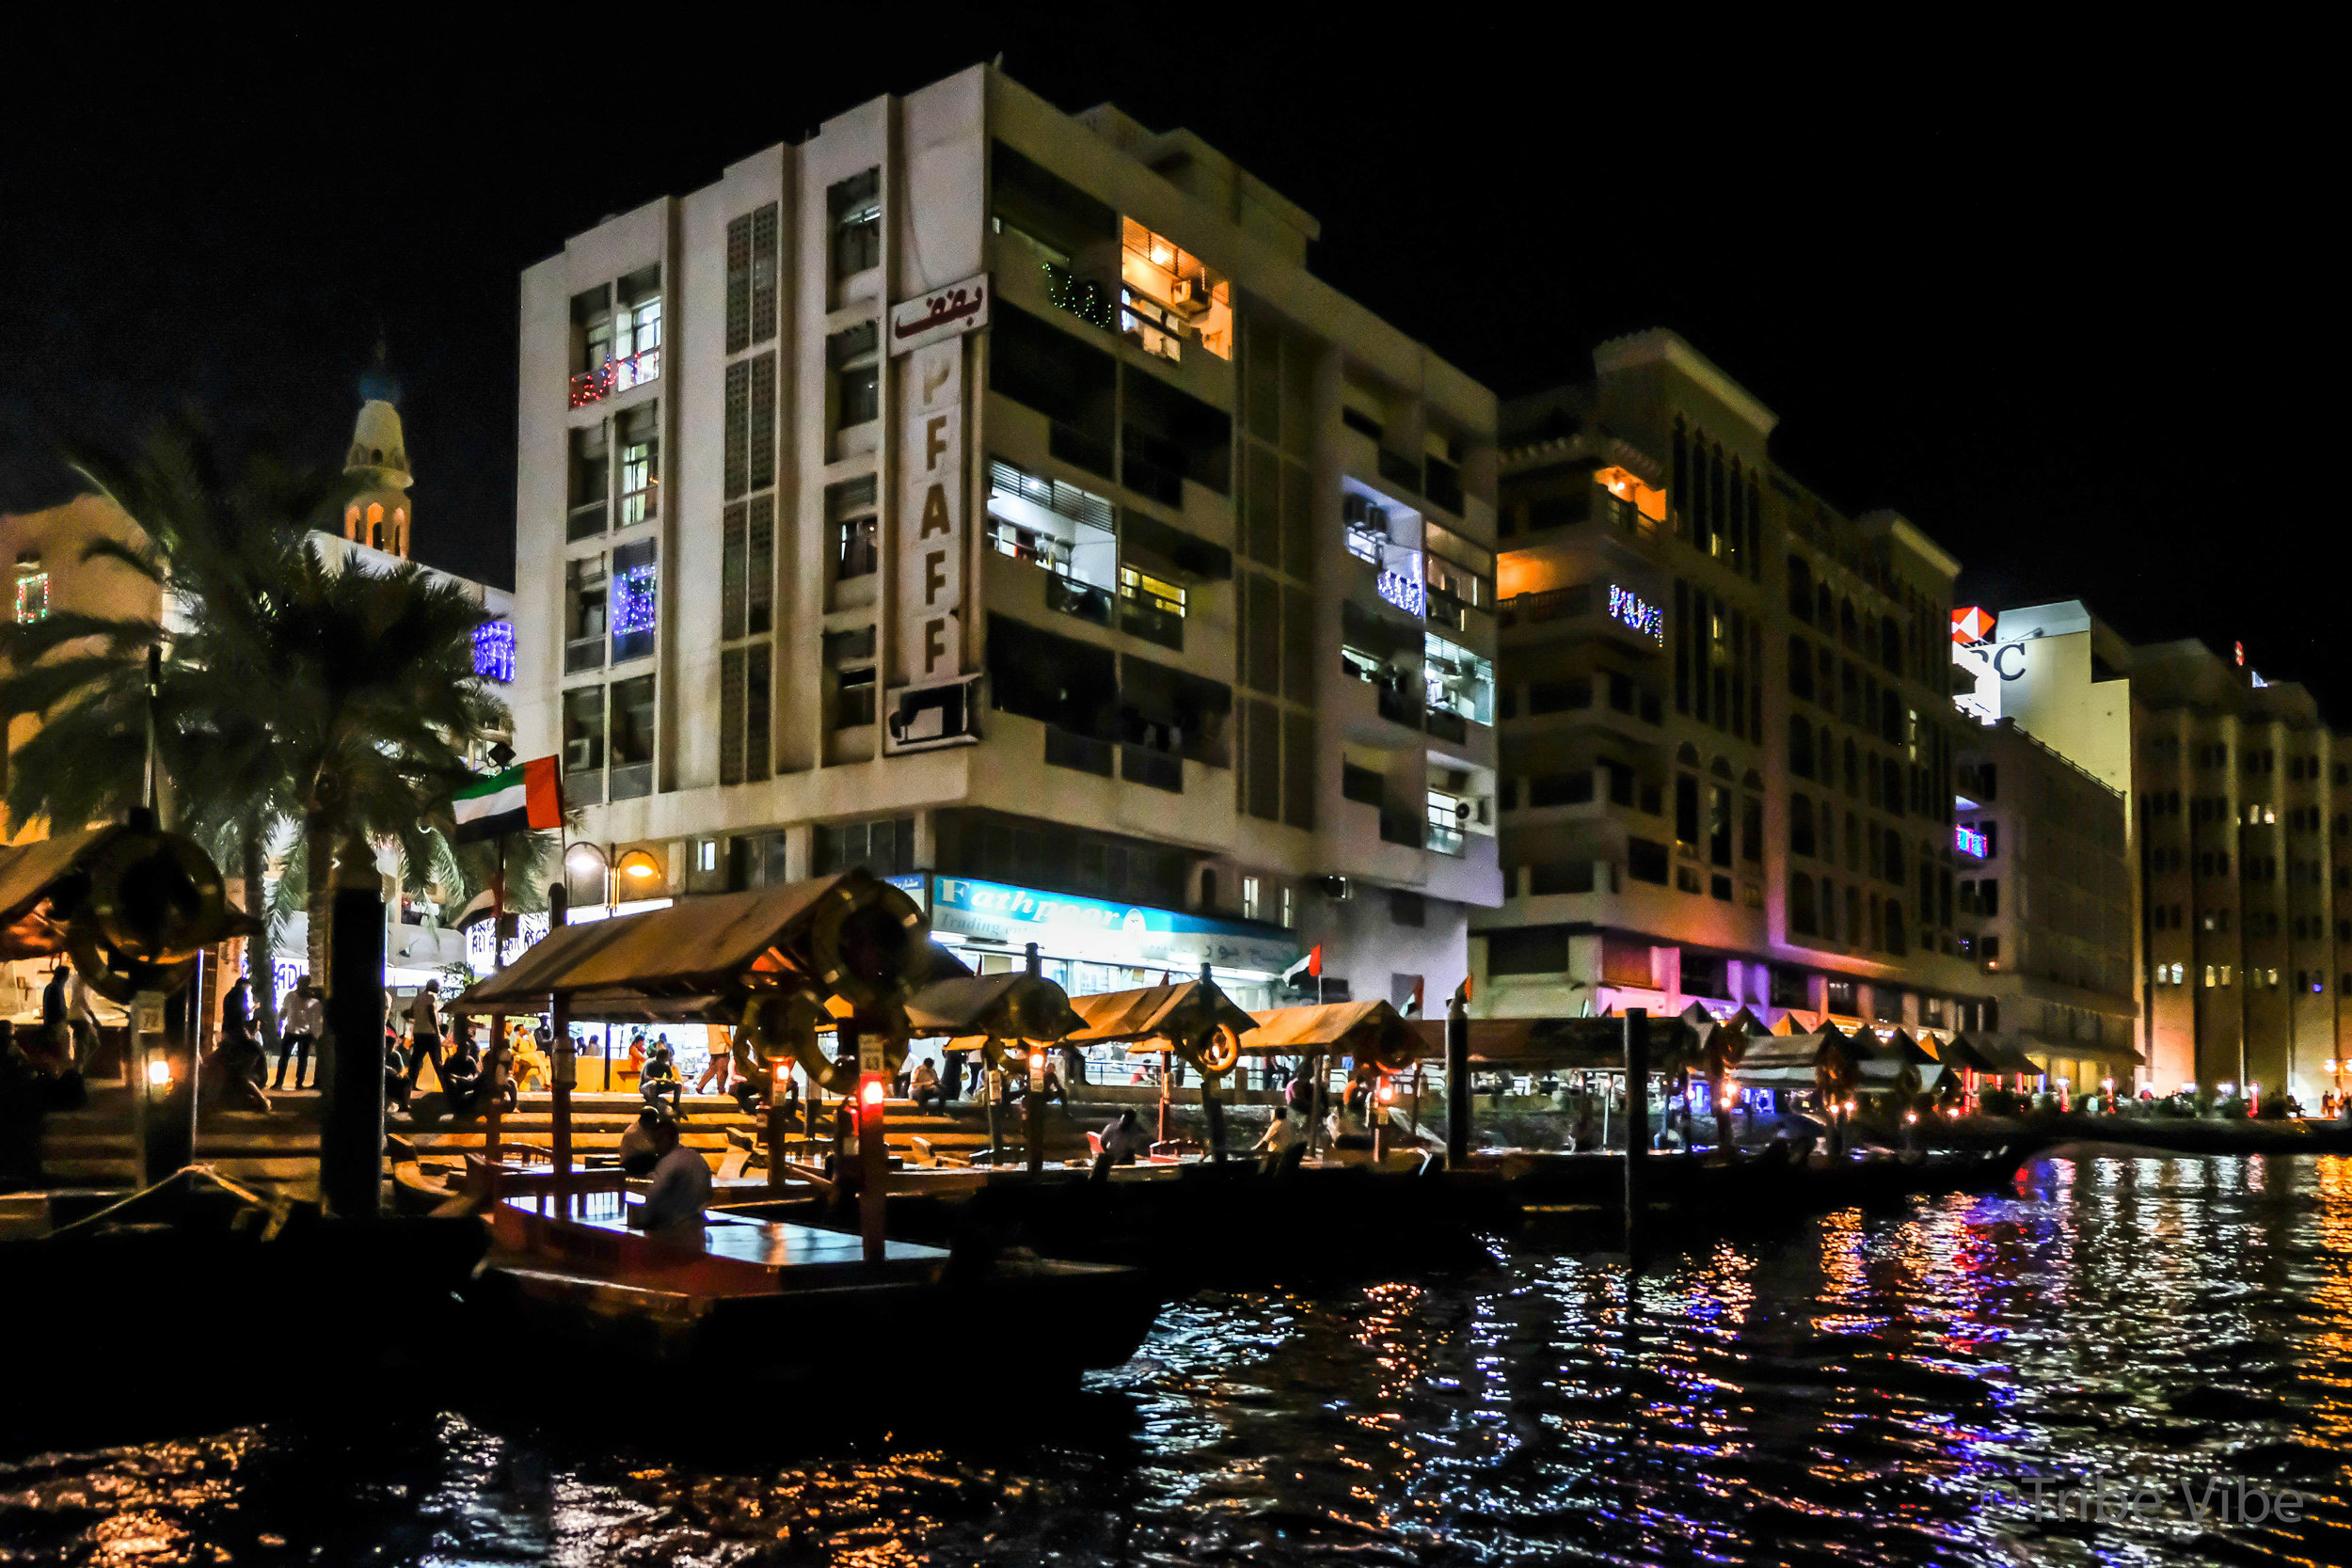 The Abra station in Bur Dubai